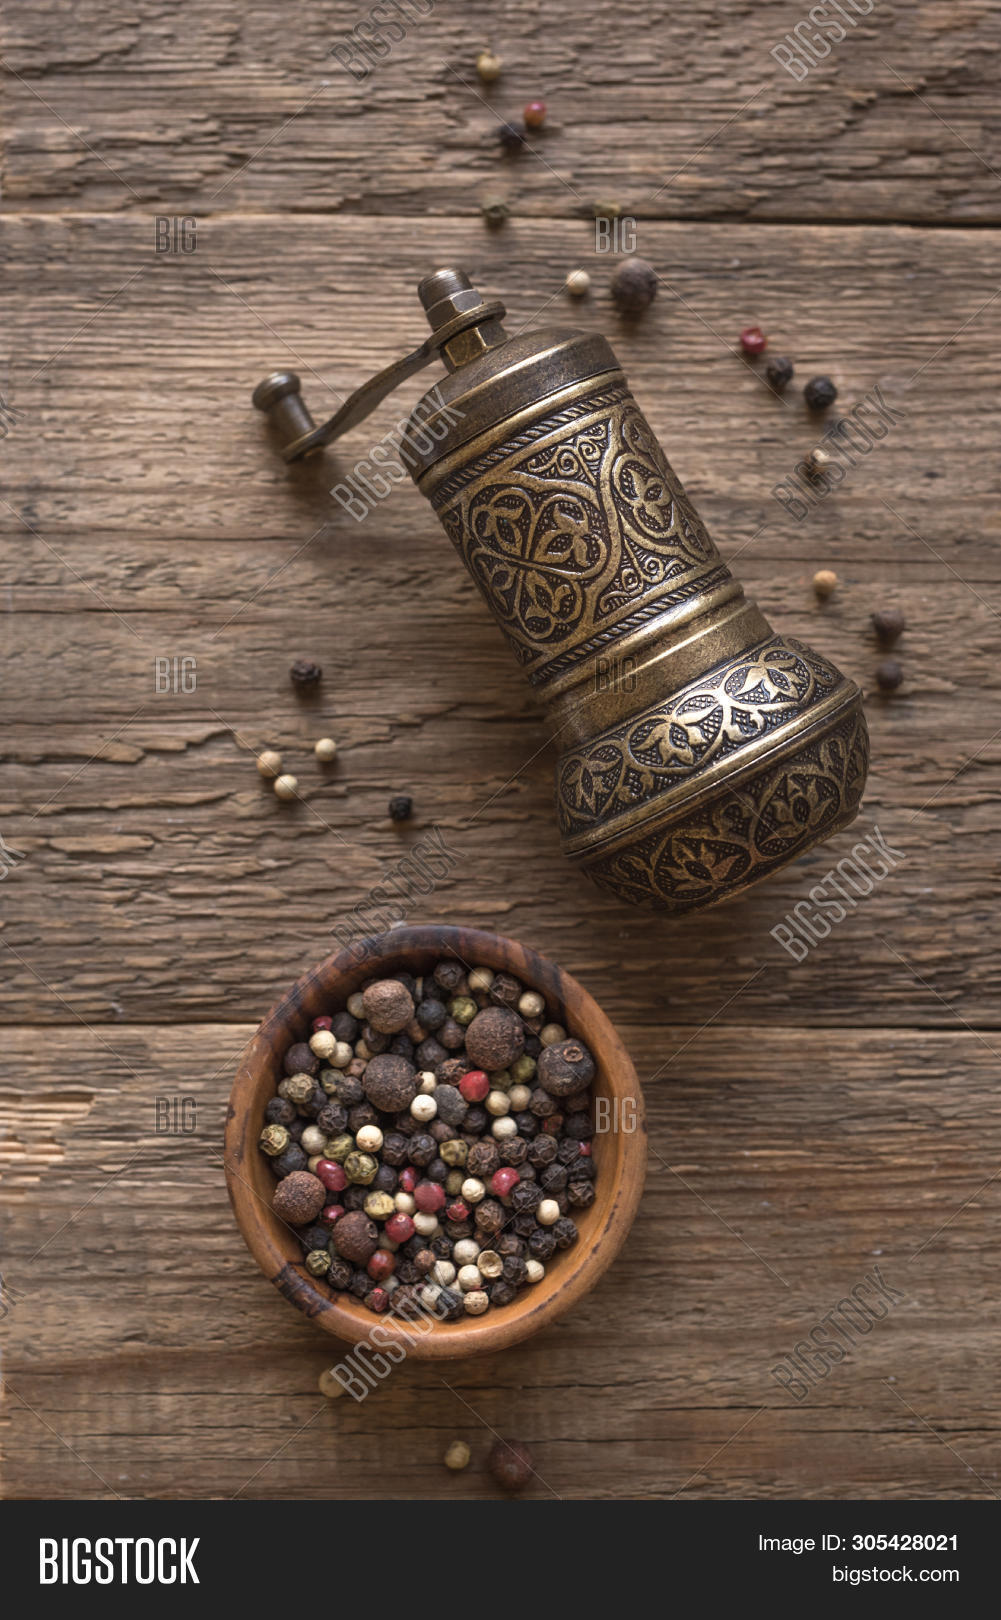 Vintage Pepper Mill Image Photo Free Trial Bigstock